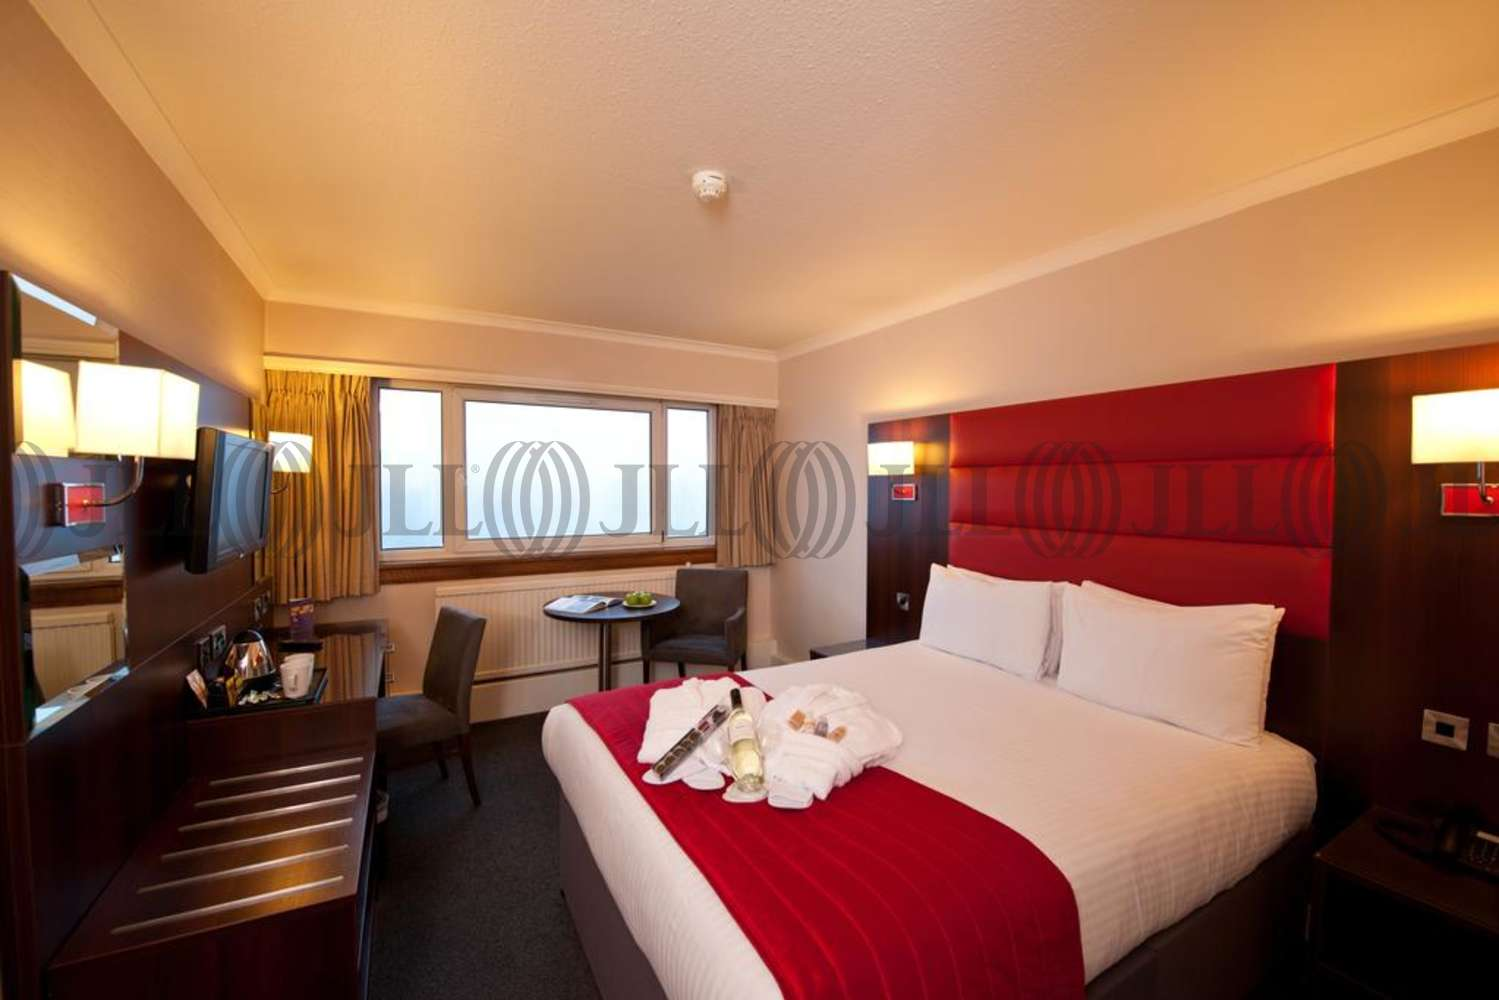 Hotel Glasgow, G12 0XP - Leonardo Hotel Glasgow West End - 01